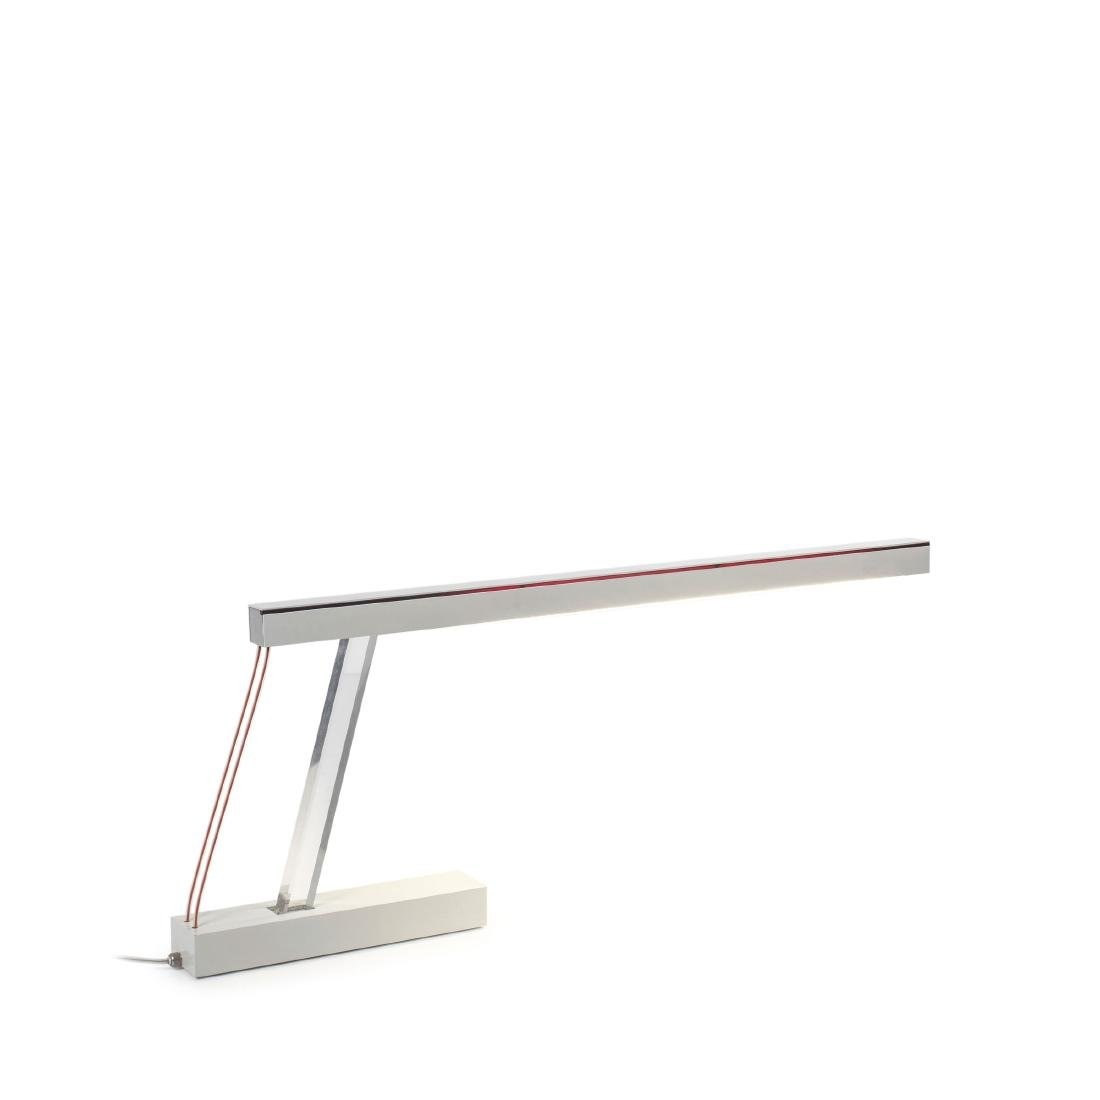 Max Rond (attributed) Table light, c. 1965